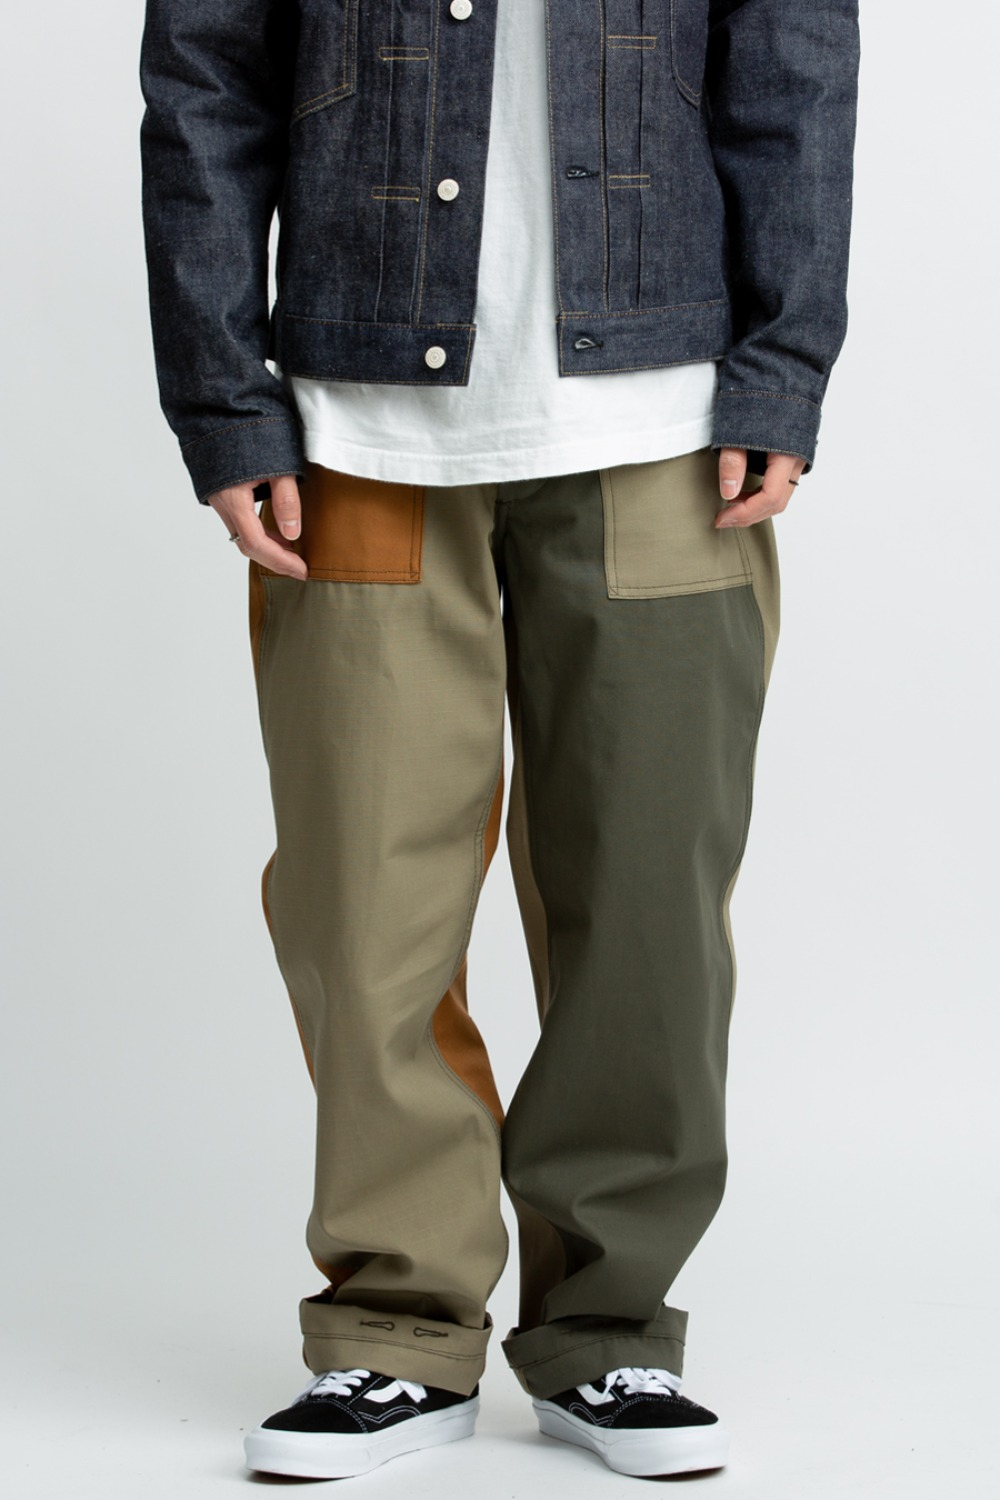 FATIGUE PANT COMBO OLIVE COTTON RIPSTOP